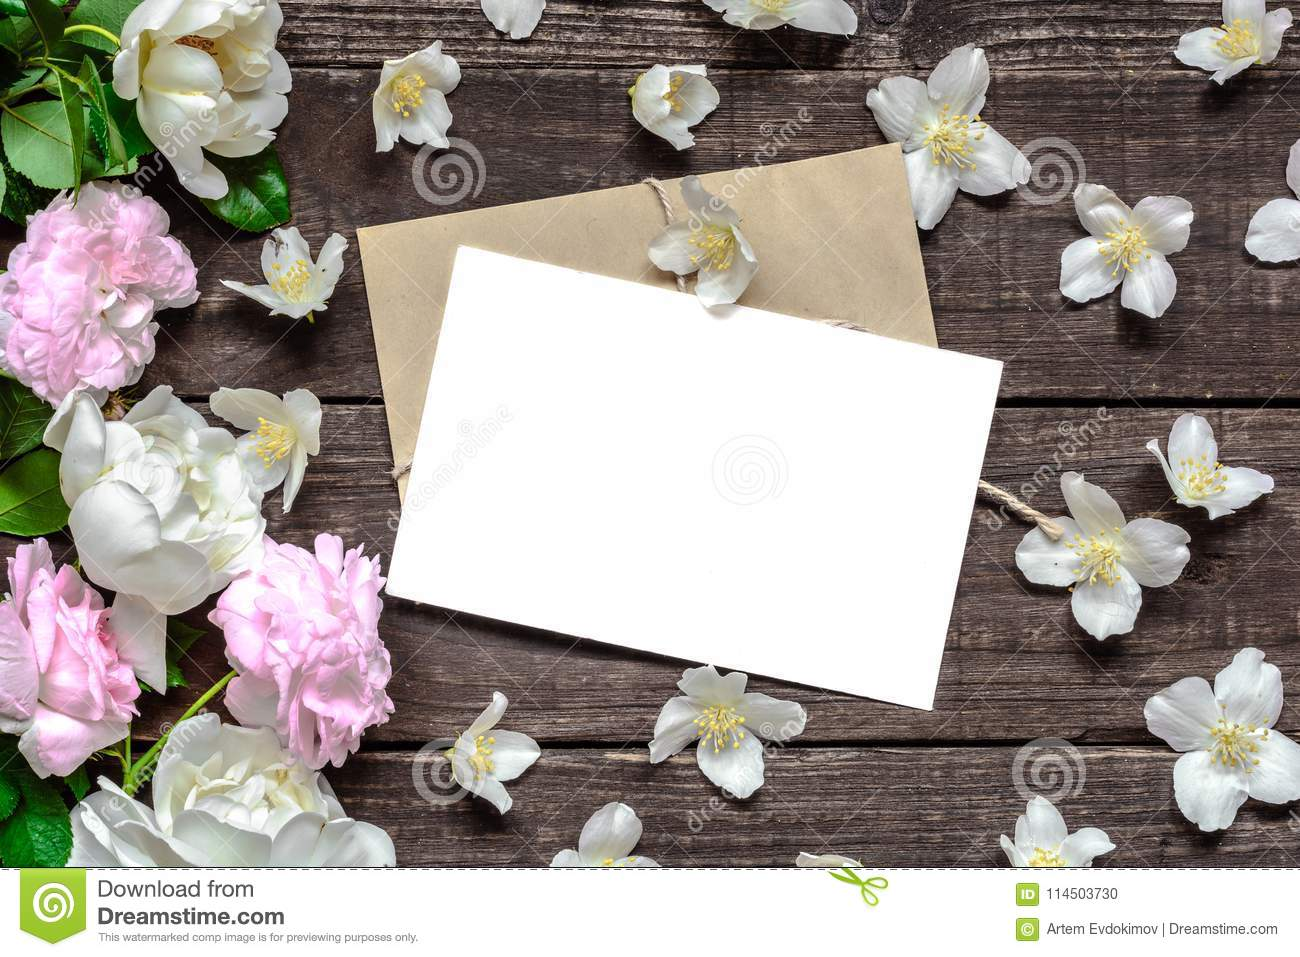 Blank white greeting card in frame made of pink roses and white jasmine flowers and envelope on rustic wooden background